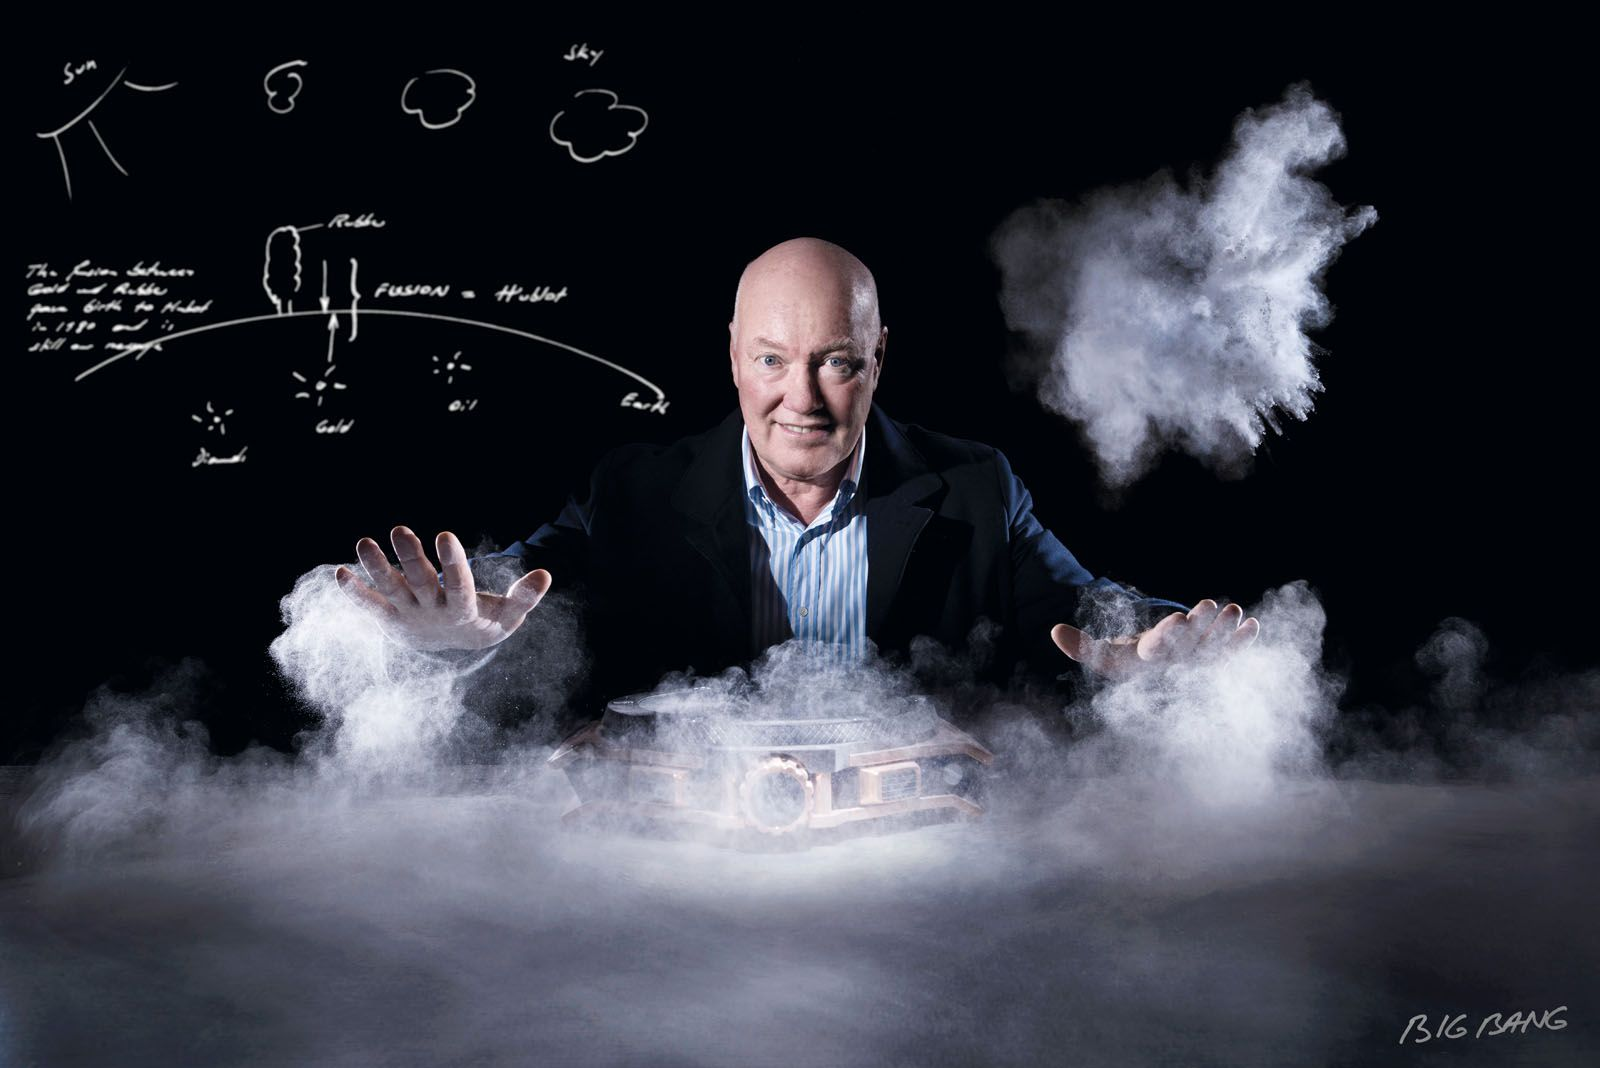 While Jean Claude Biver does not quite boast the Midas touch, he has largely rejuvenated the brands he has helmed, bringing them to another level